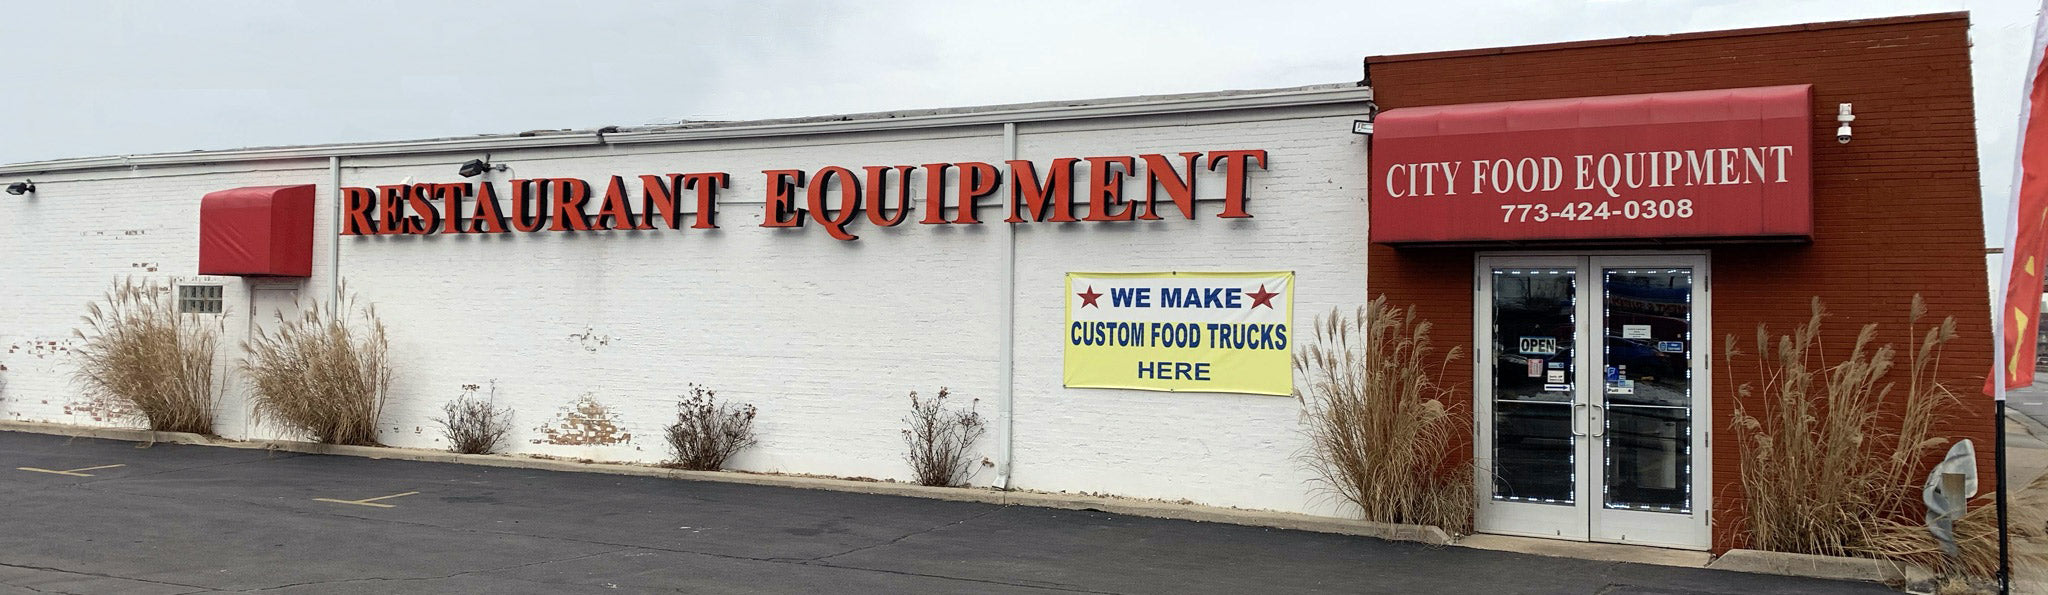 City Food Equipment New and Used Restaurant Equipment and Kitchen Supply ChicagoIL Store